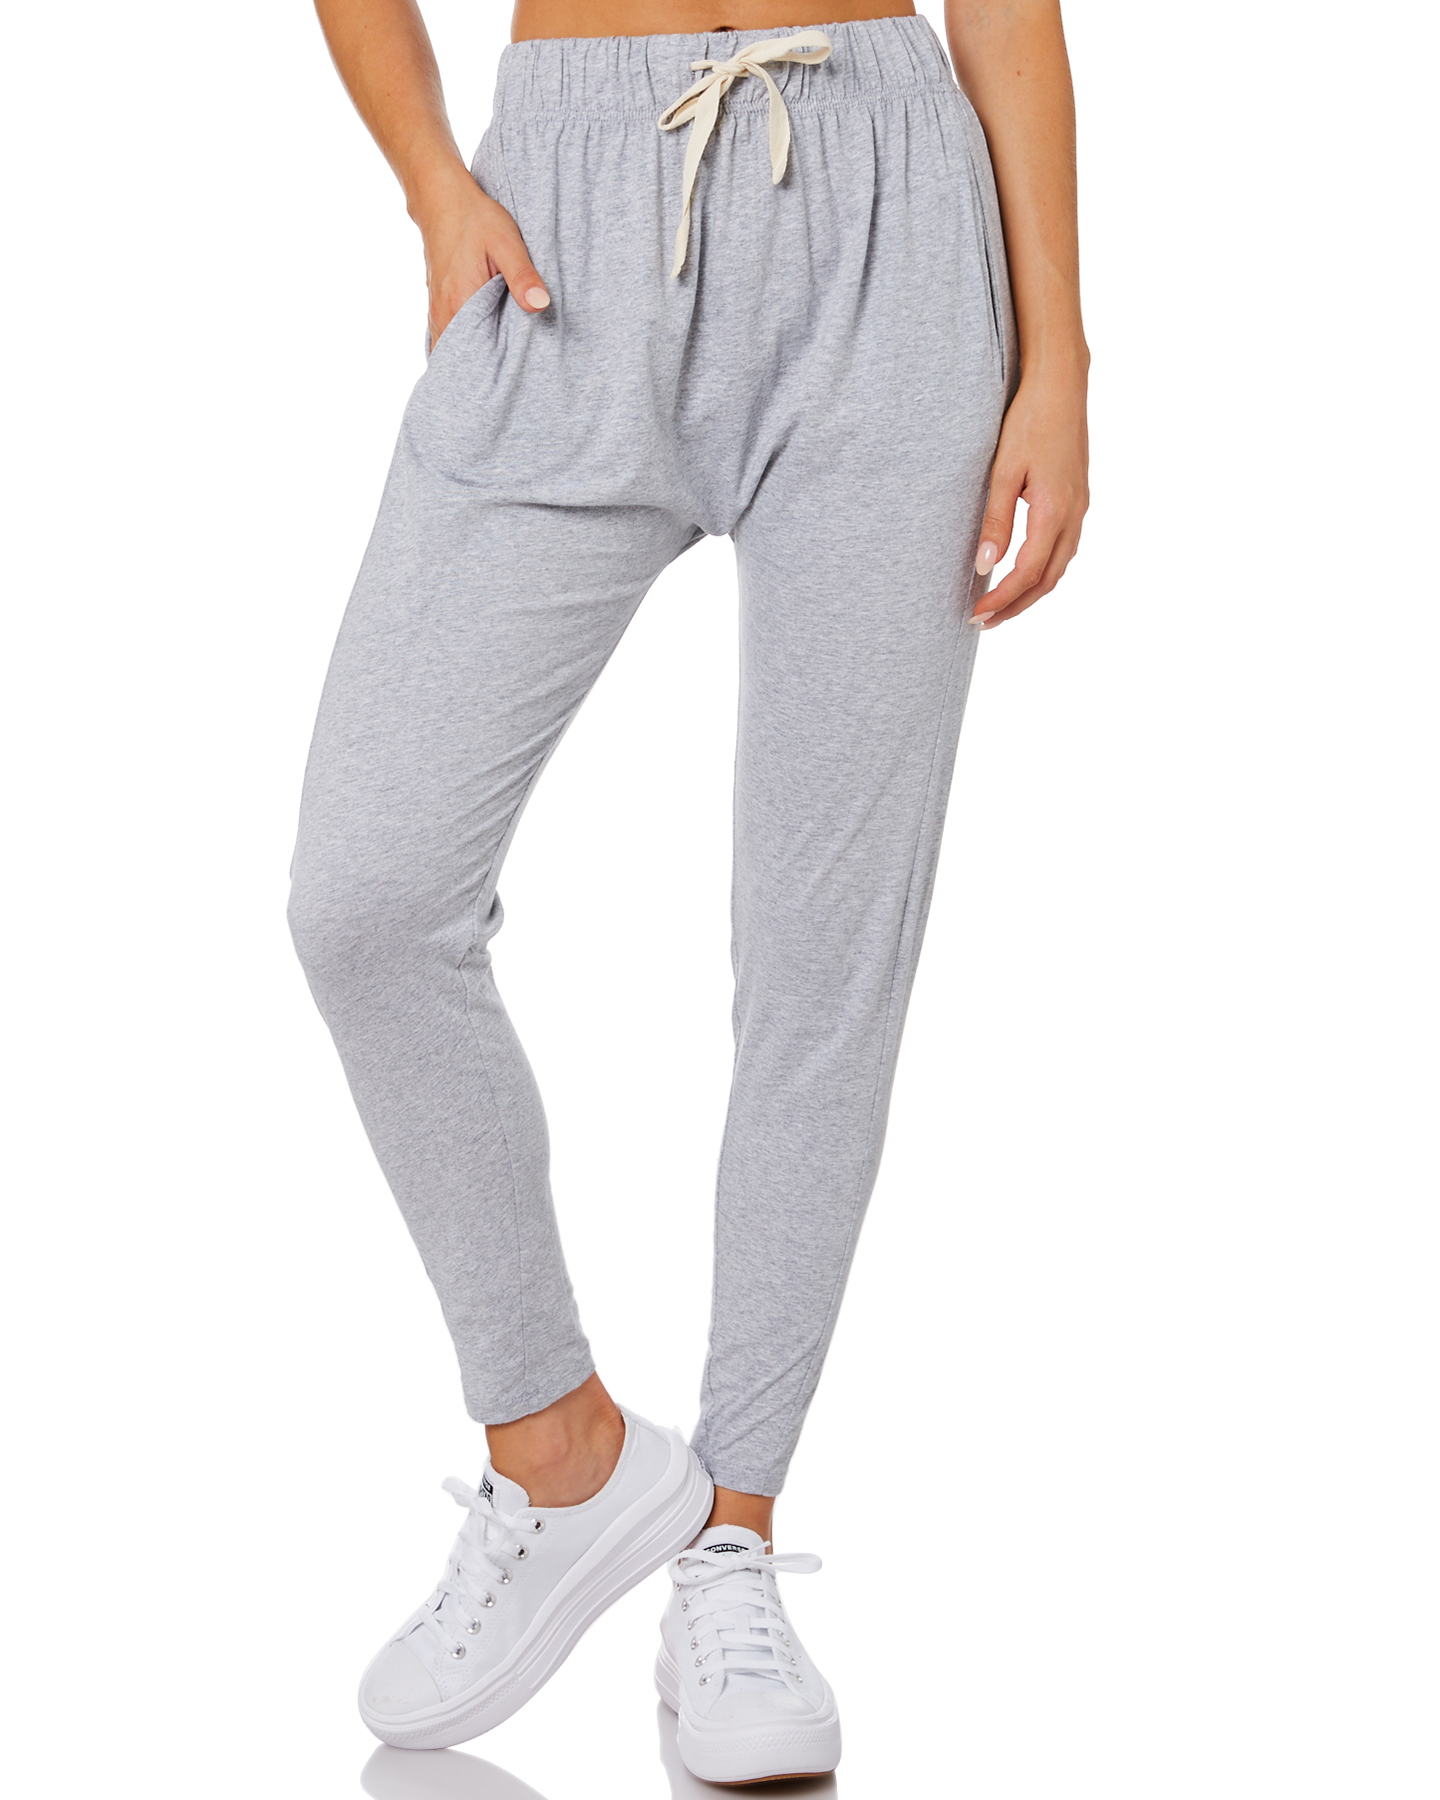 Silent Theory Fluid Womens Pant Grey Marle